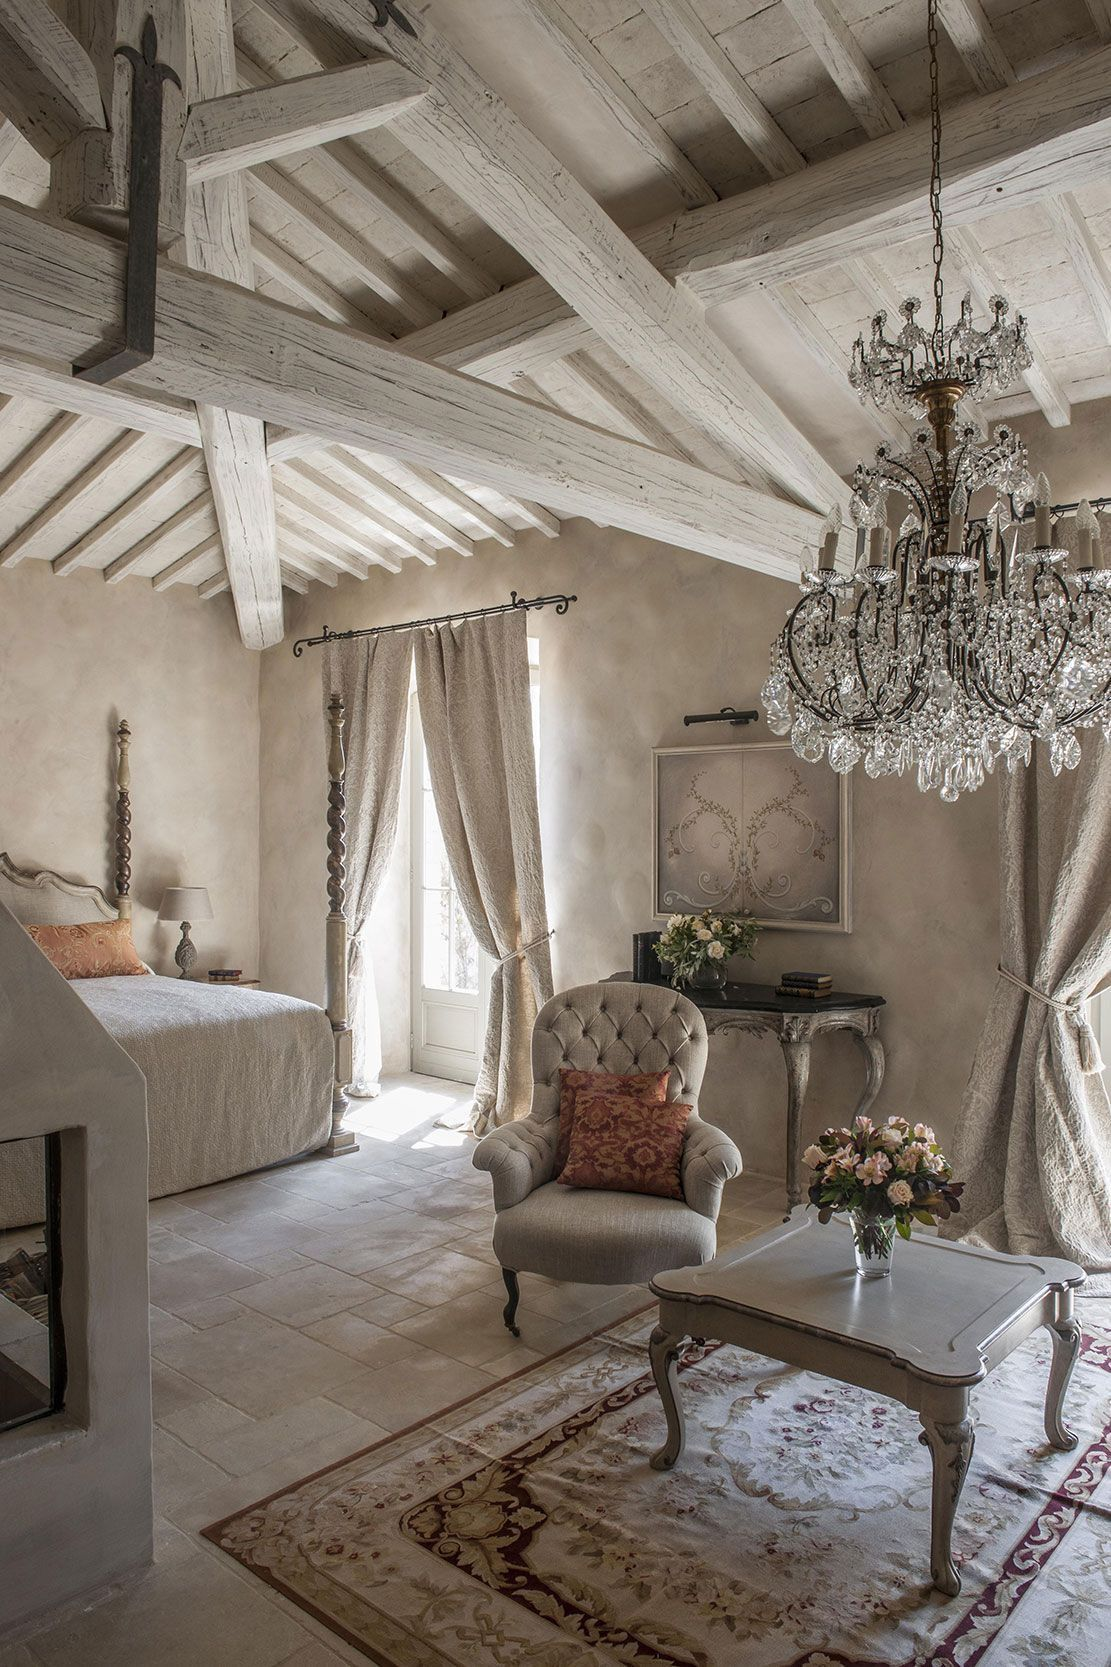 Épinglé par MyHome Designer sur Bedroom Ideas | Pinterest ...